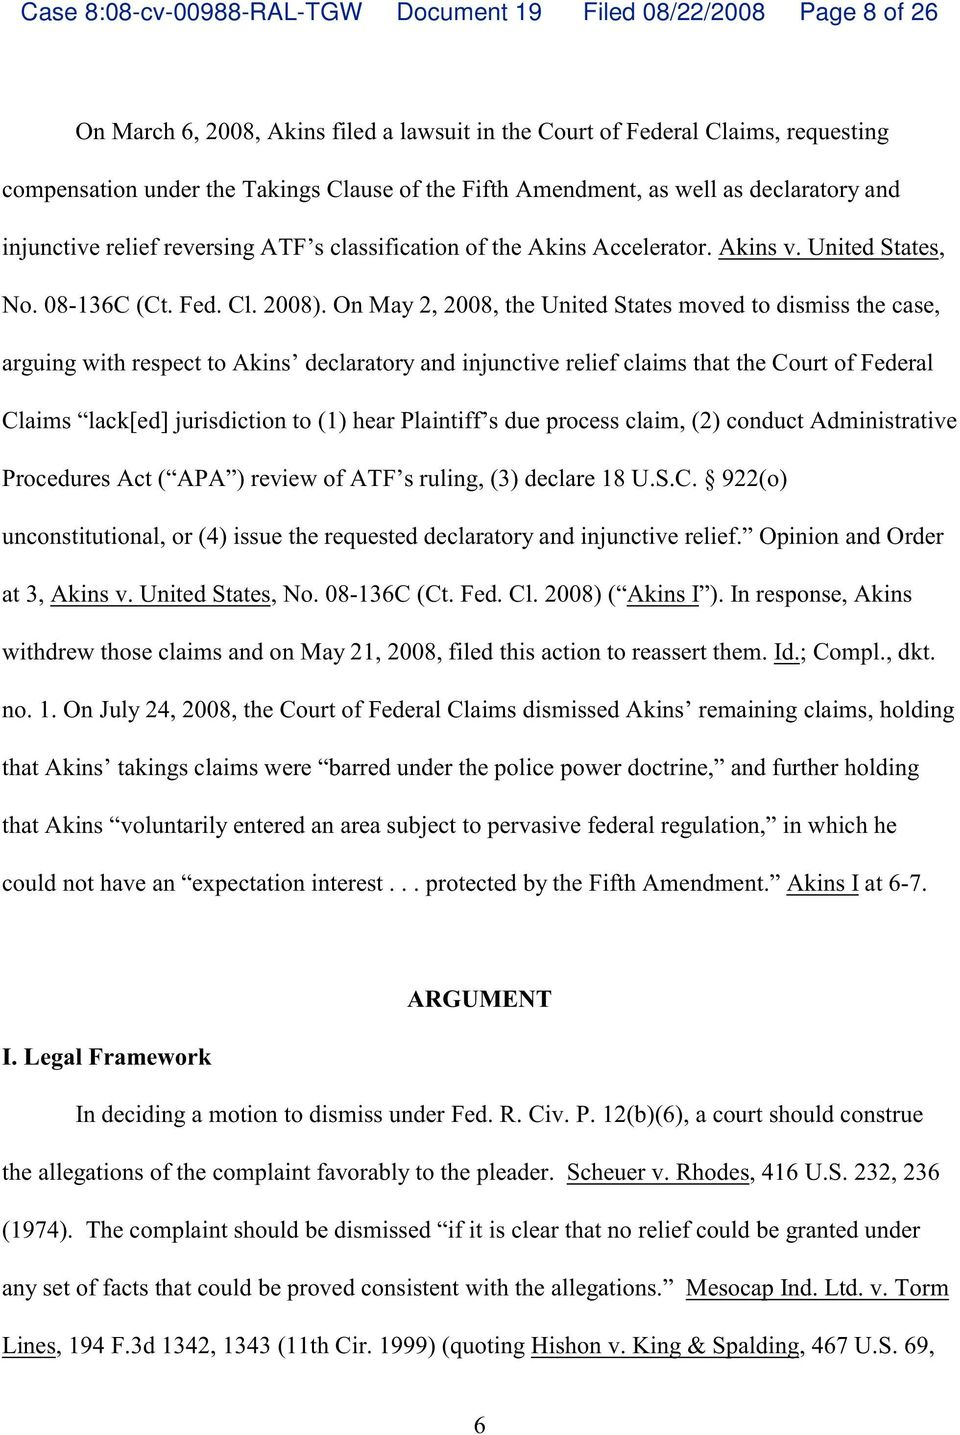 On May 2, 2008, e United States moved to dismiss e case, arguing wi respect to Akins declaratory and injunctive relief claims at e Court of Federal Claims lack[ed] jurisdiction to (1 hear Plaintiff s